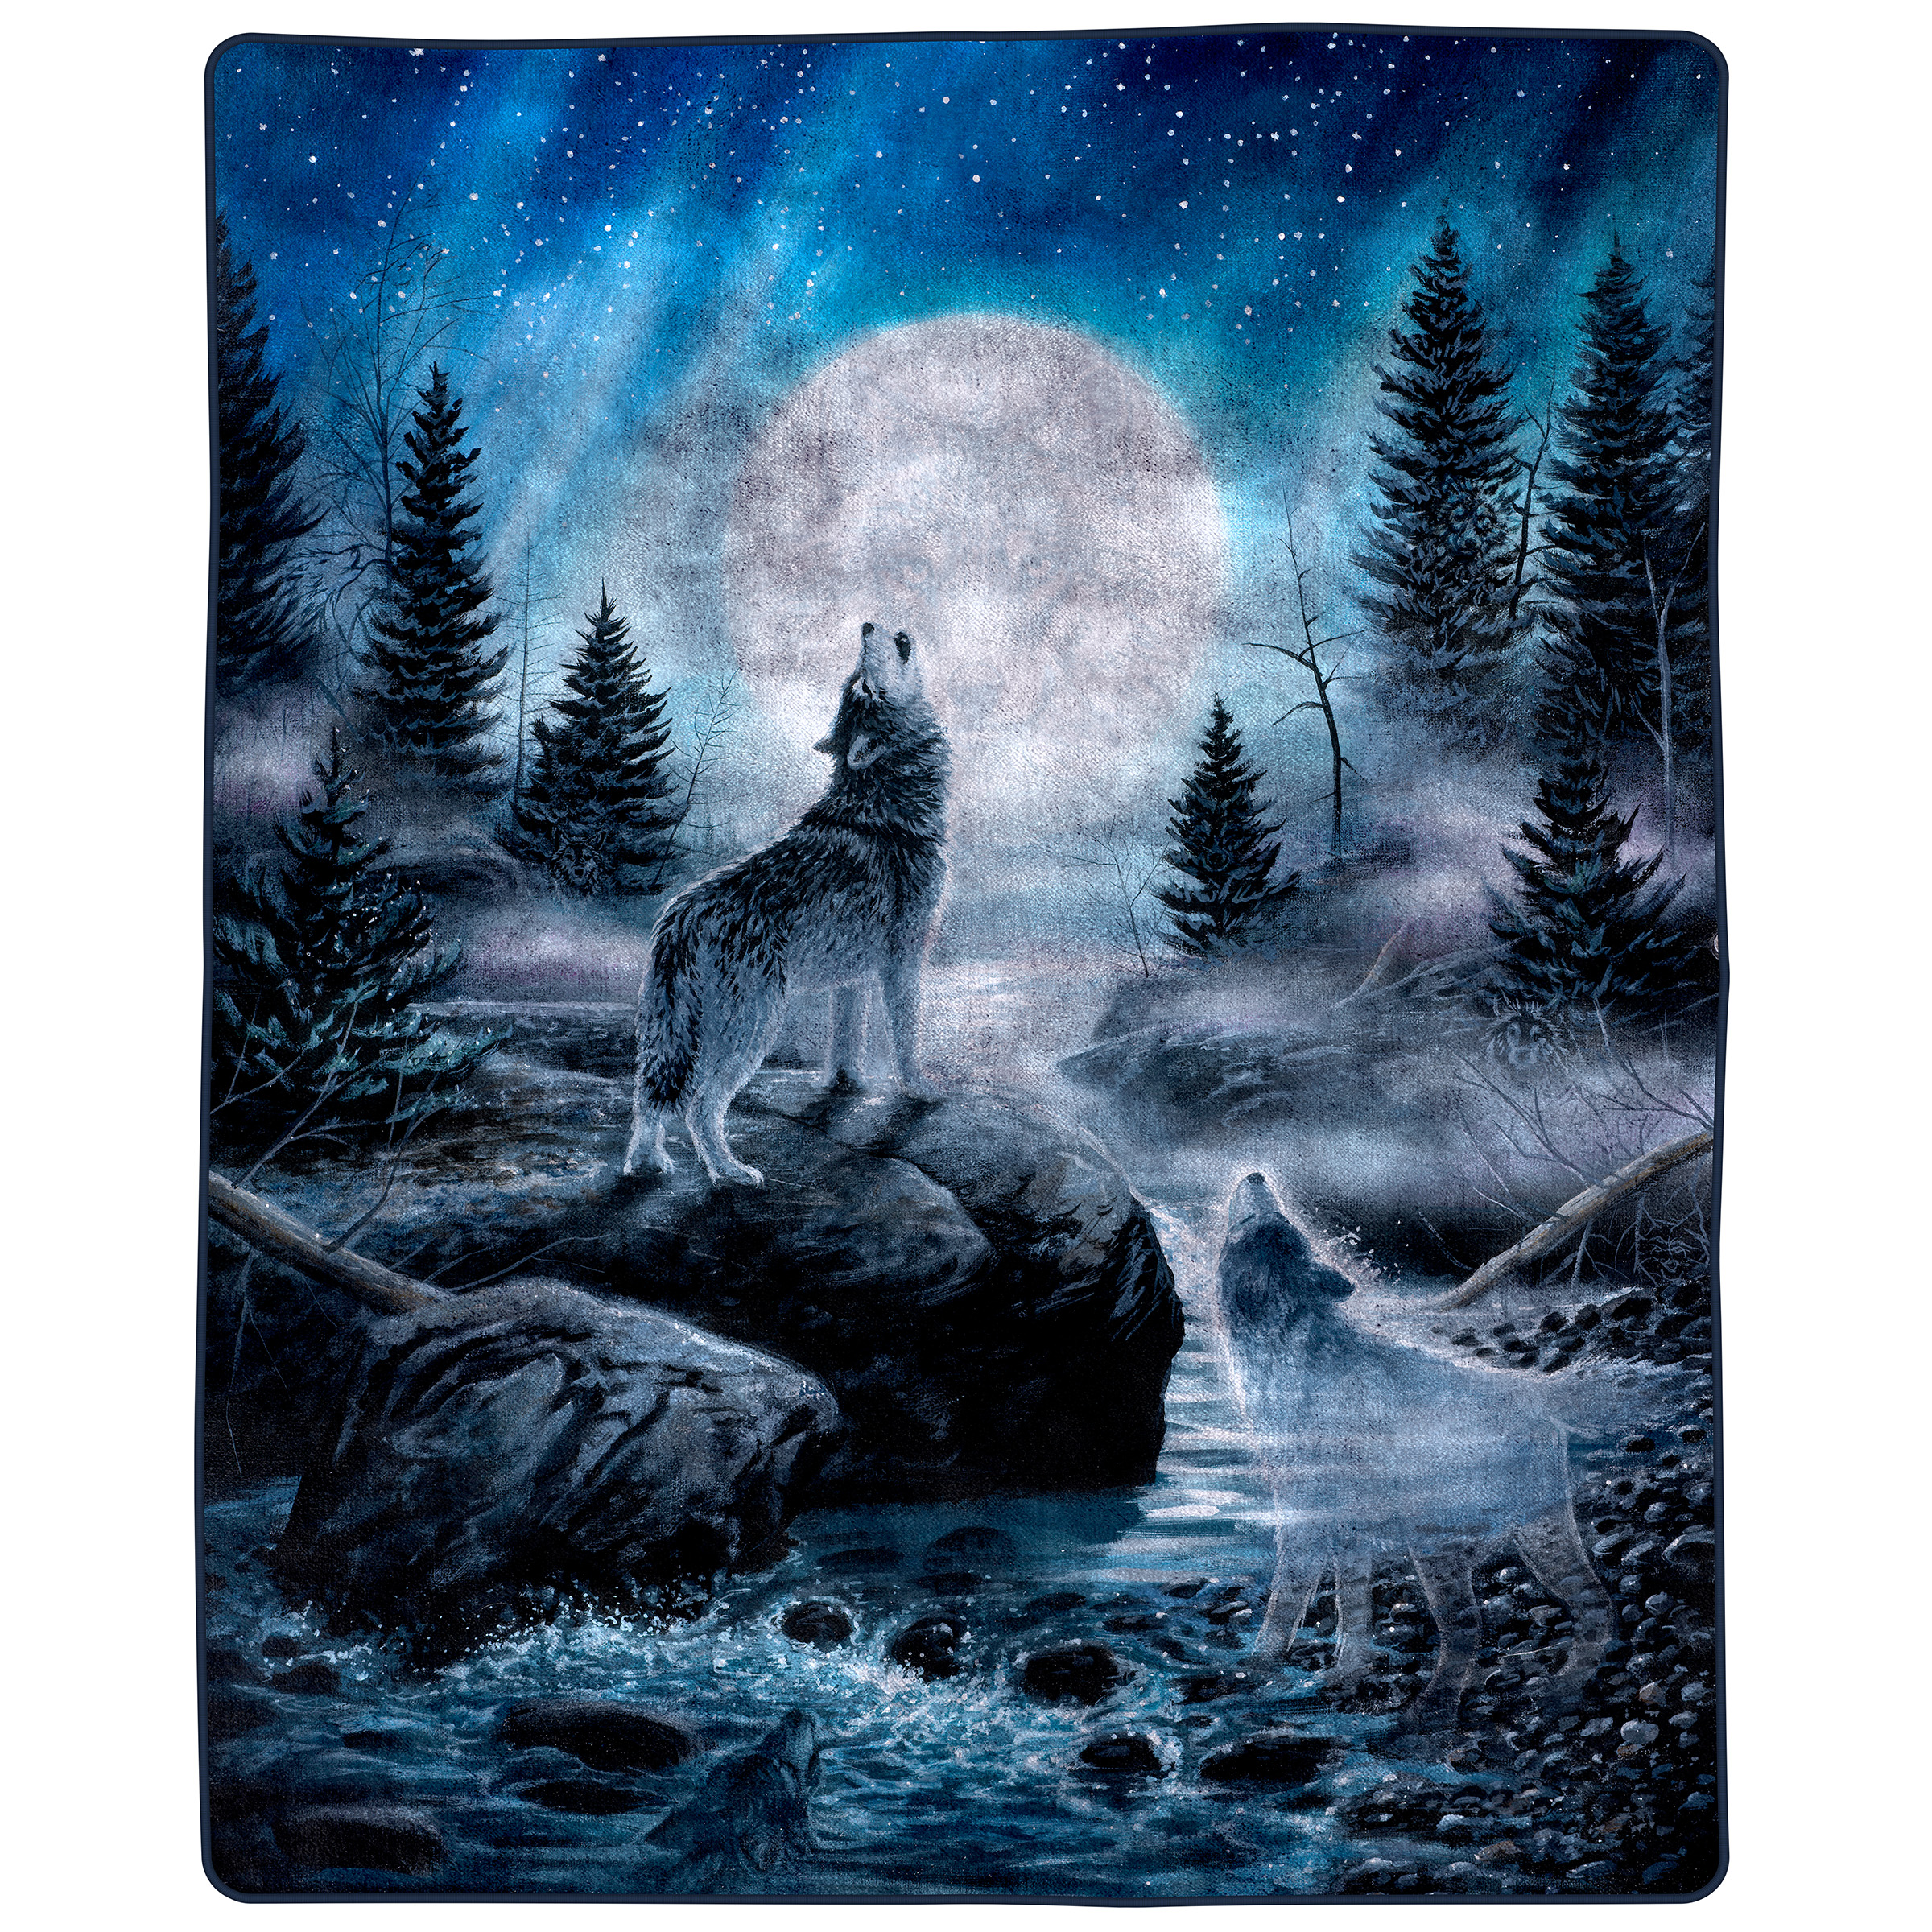 "Heavy Fleece Blanket with Howling Wolf Pattern- Plush Thick 8 Pound Faux Mink Soft Blanket for Couch Sofa Bed by Somerset Home (74"" x 91"")"